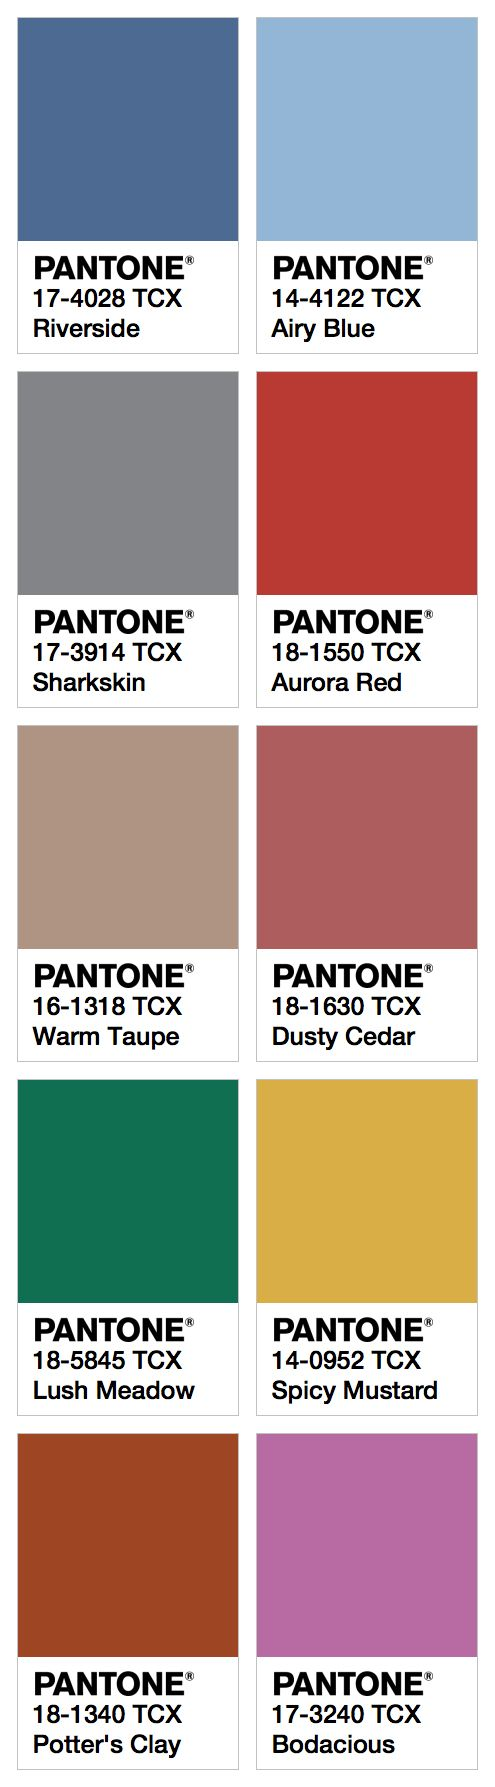 pantone fashion color report fall 2016 amanda and owen wedding pinterest herbst herbst. Black Bedroom Furniture Sets. Home Design Ideas